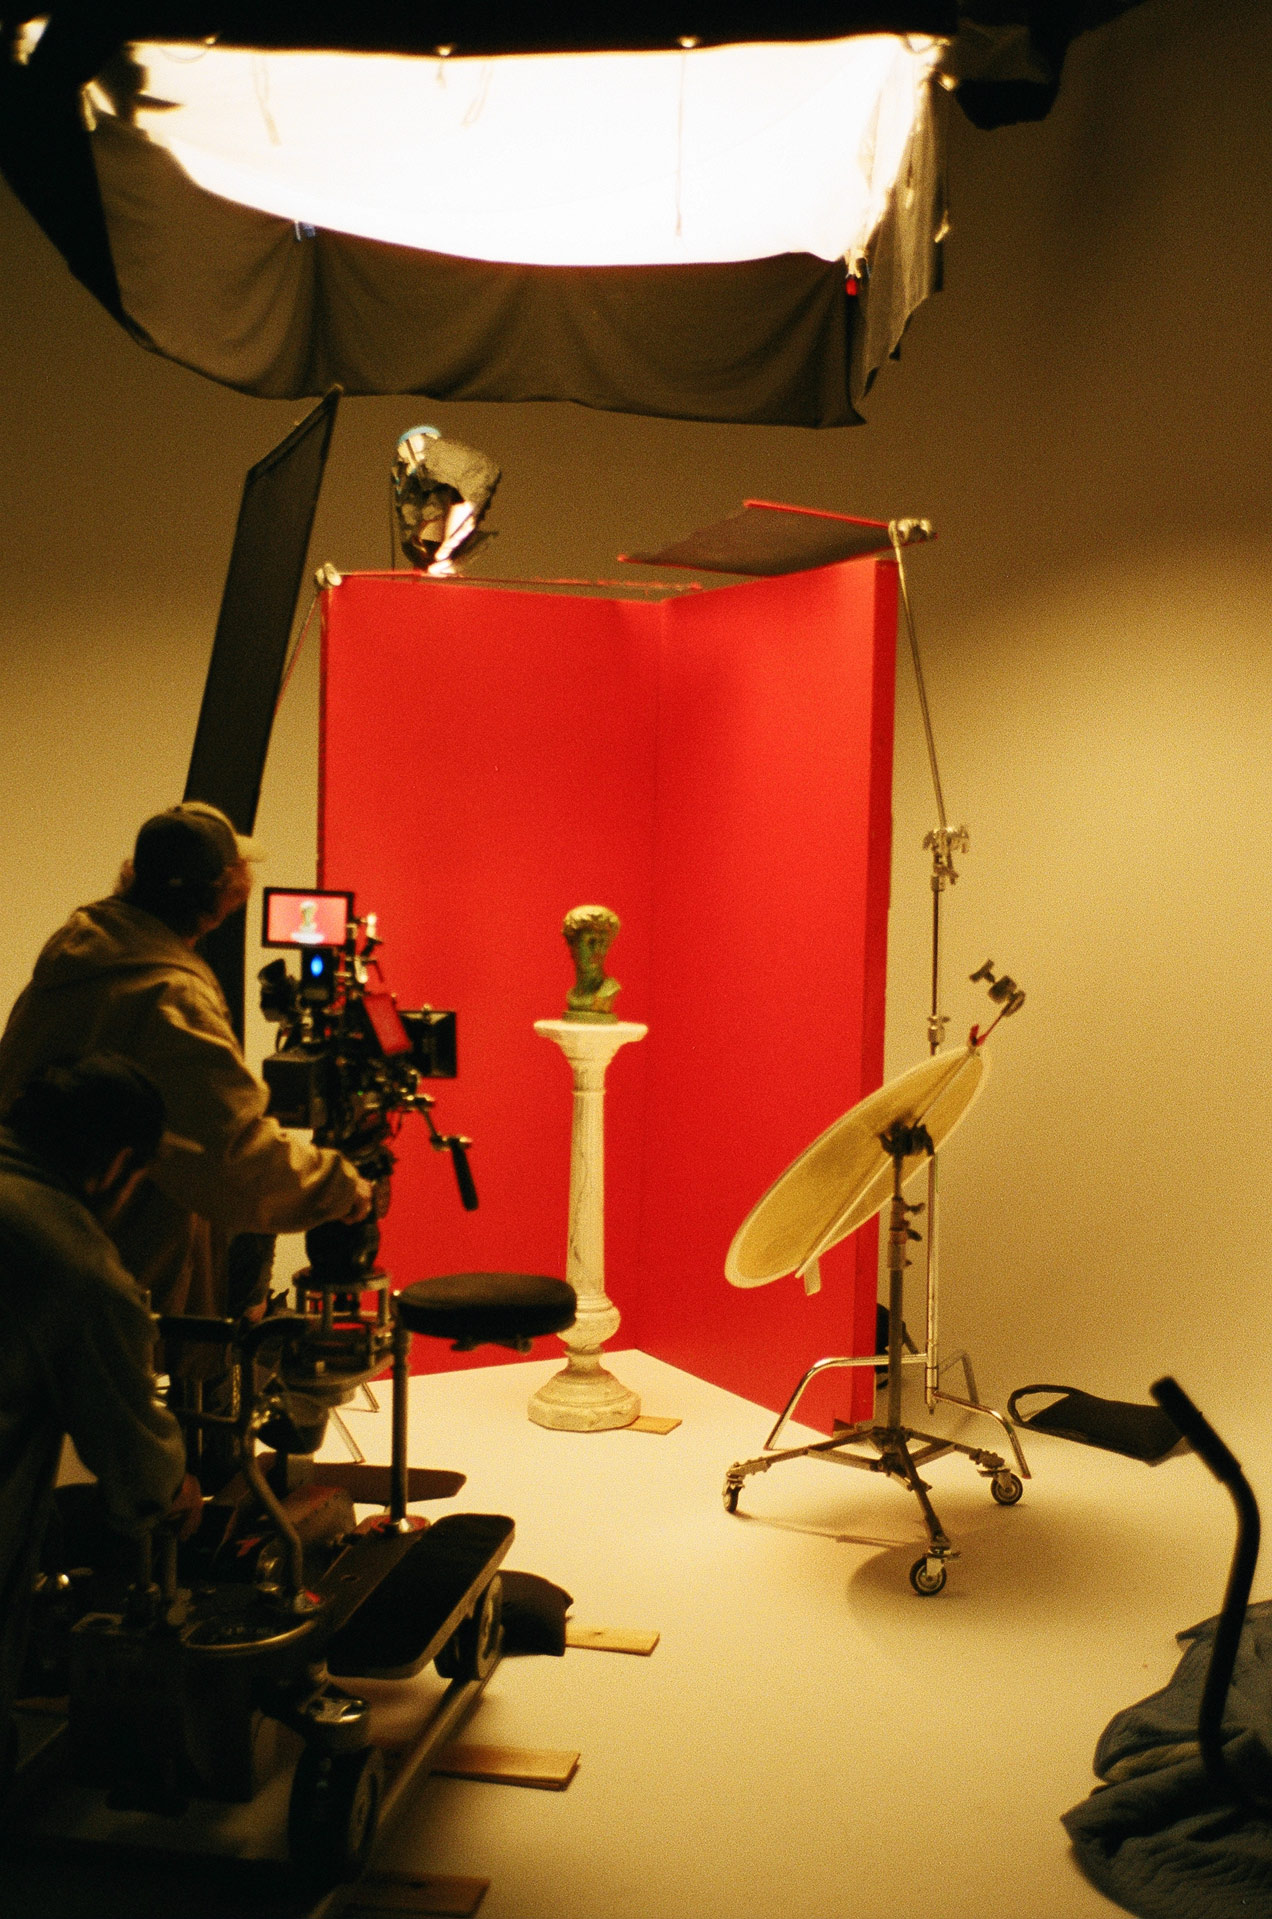 studio set with equipment and cameras for Zach Zoya music video Who Dat filmed by Les Gamins